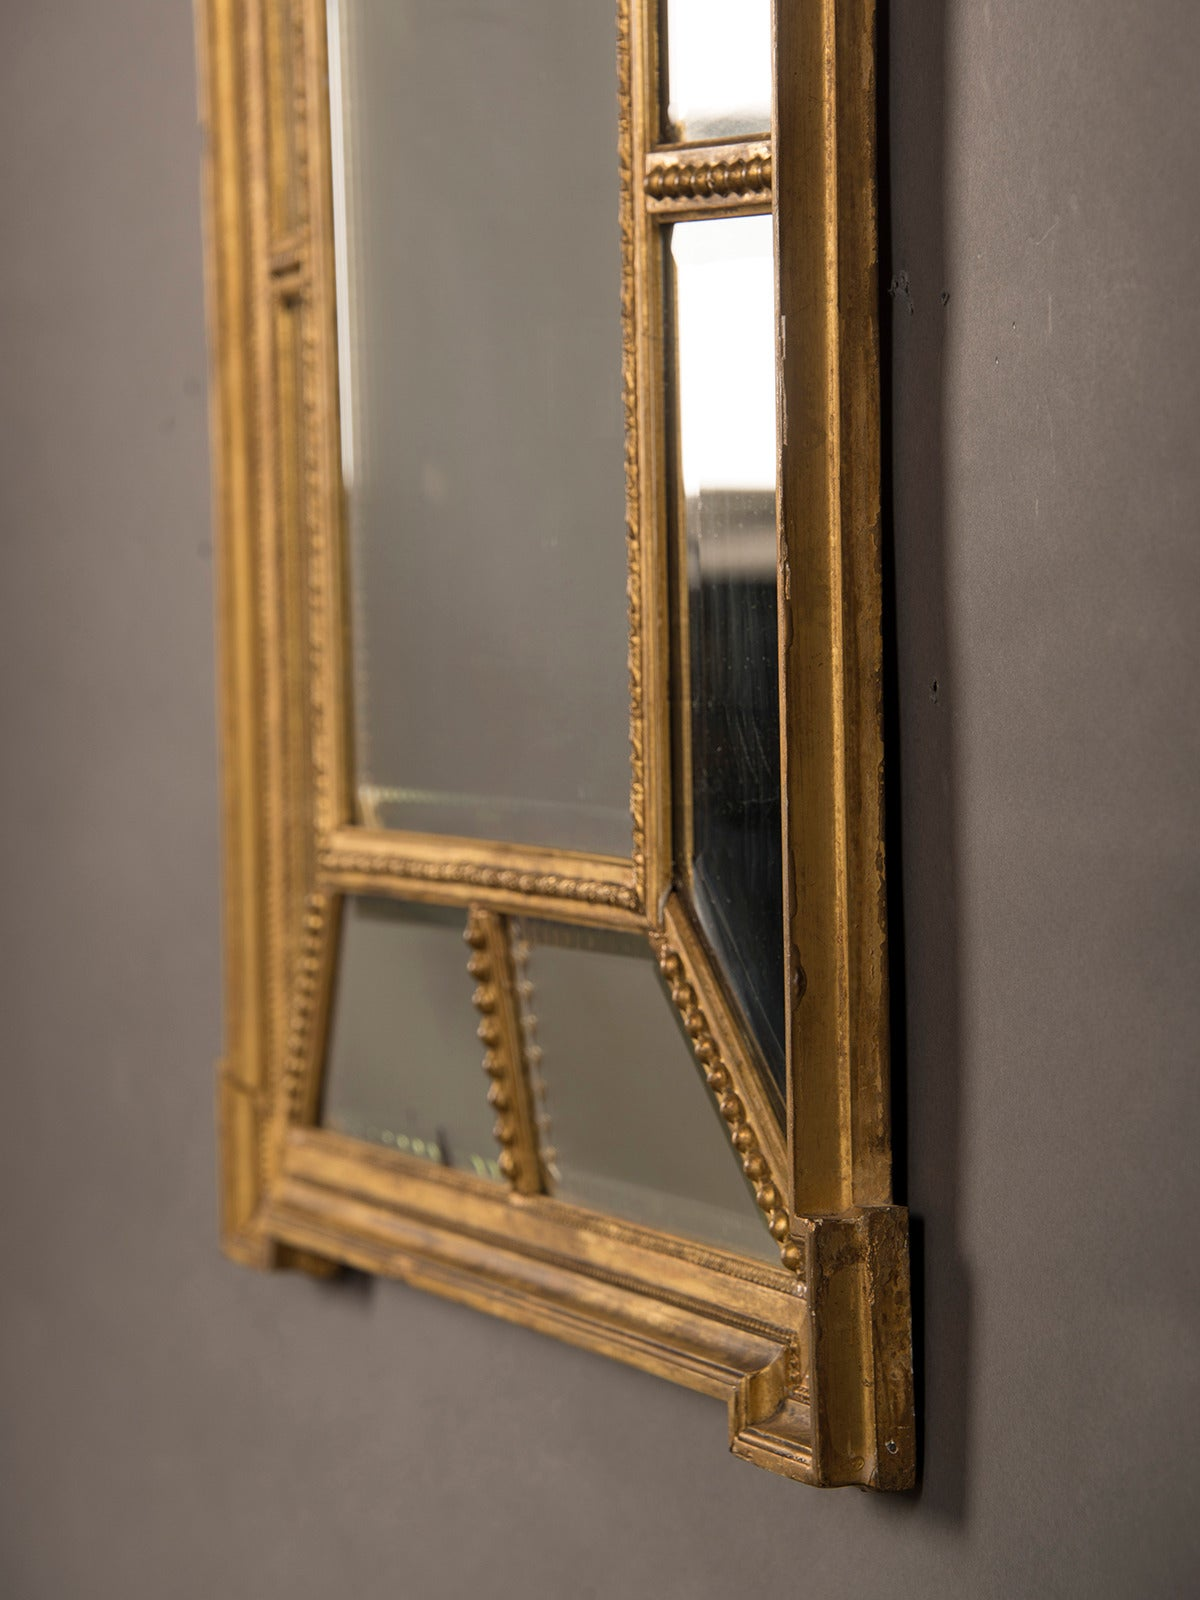 Adam style gold leaf frame mirror england circa 1895 28 for Adam style mirror